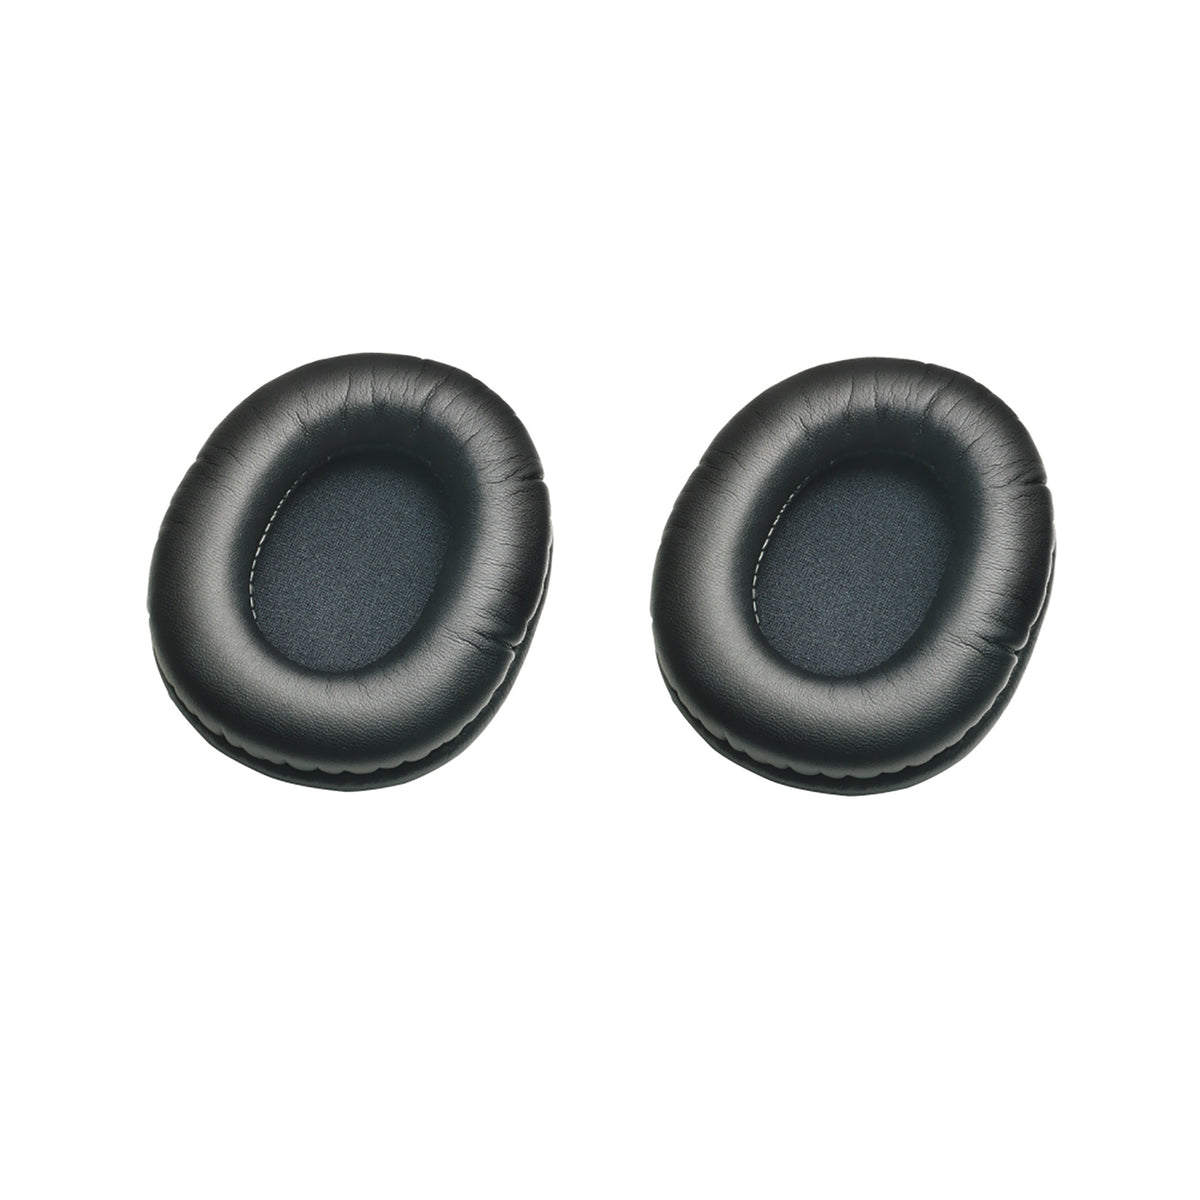 Audio-Technica: HP-EP Replacement Earpads for M-Series Headphones